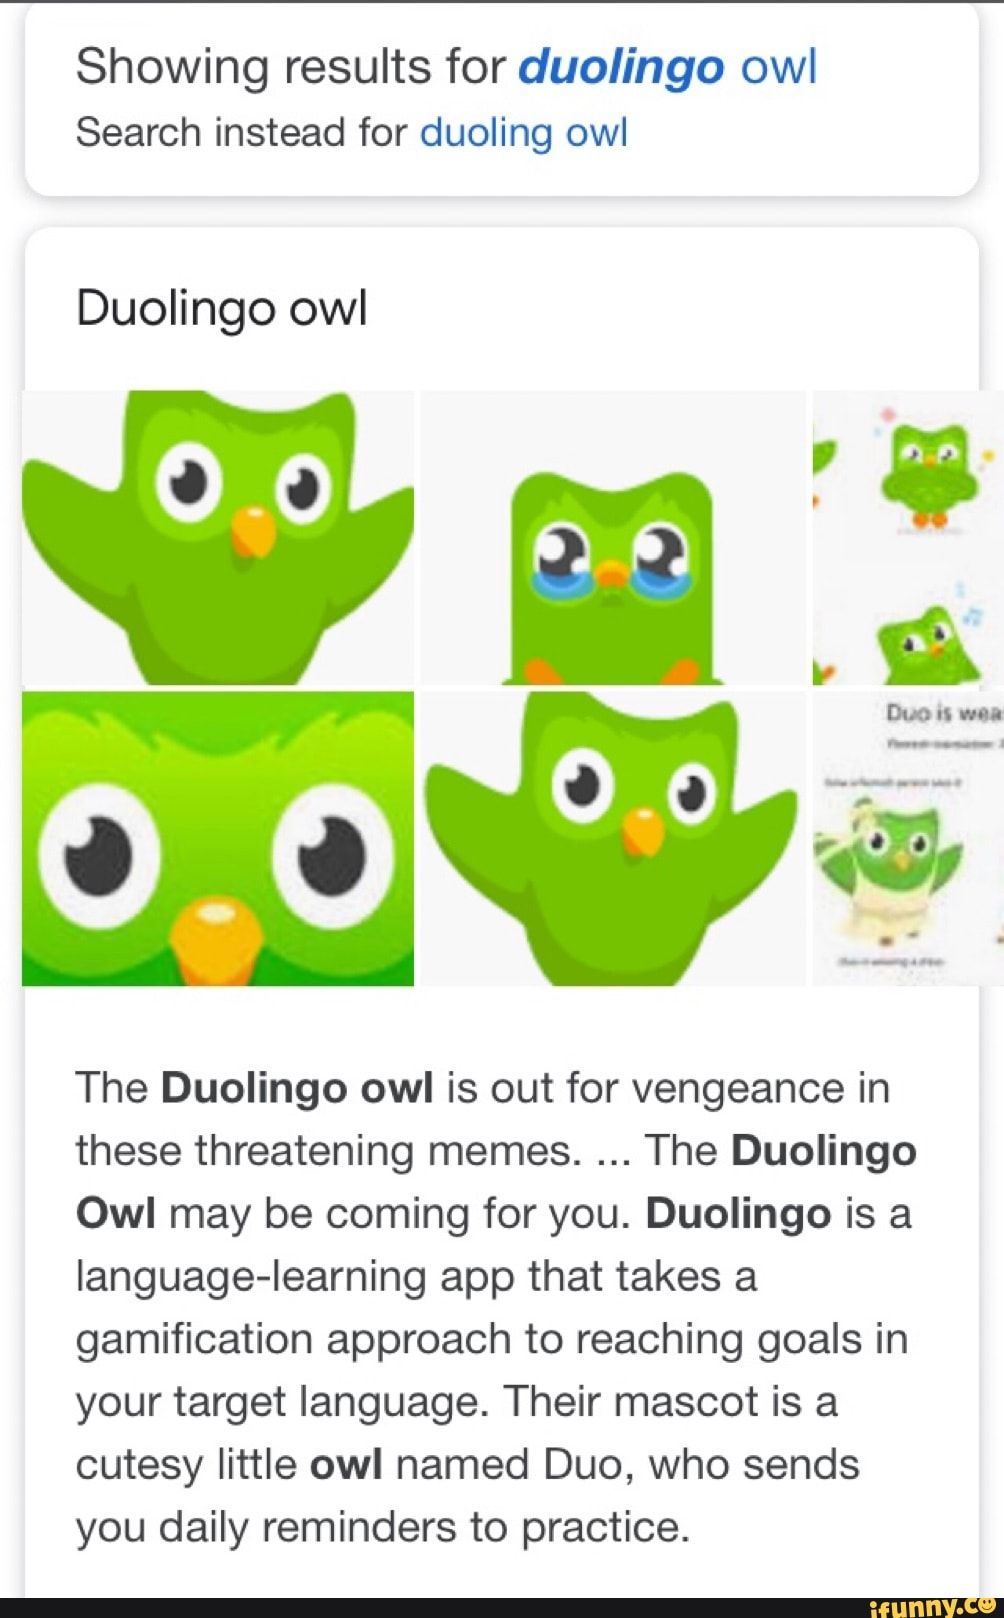 Showing Results For Duolingo Owl Search Instead For Duoling Owl